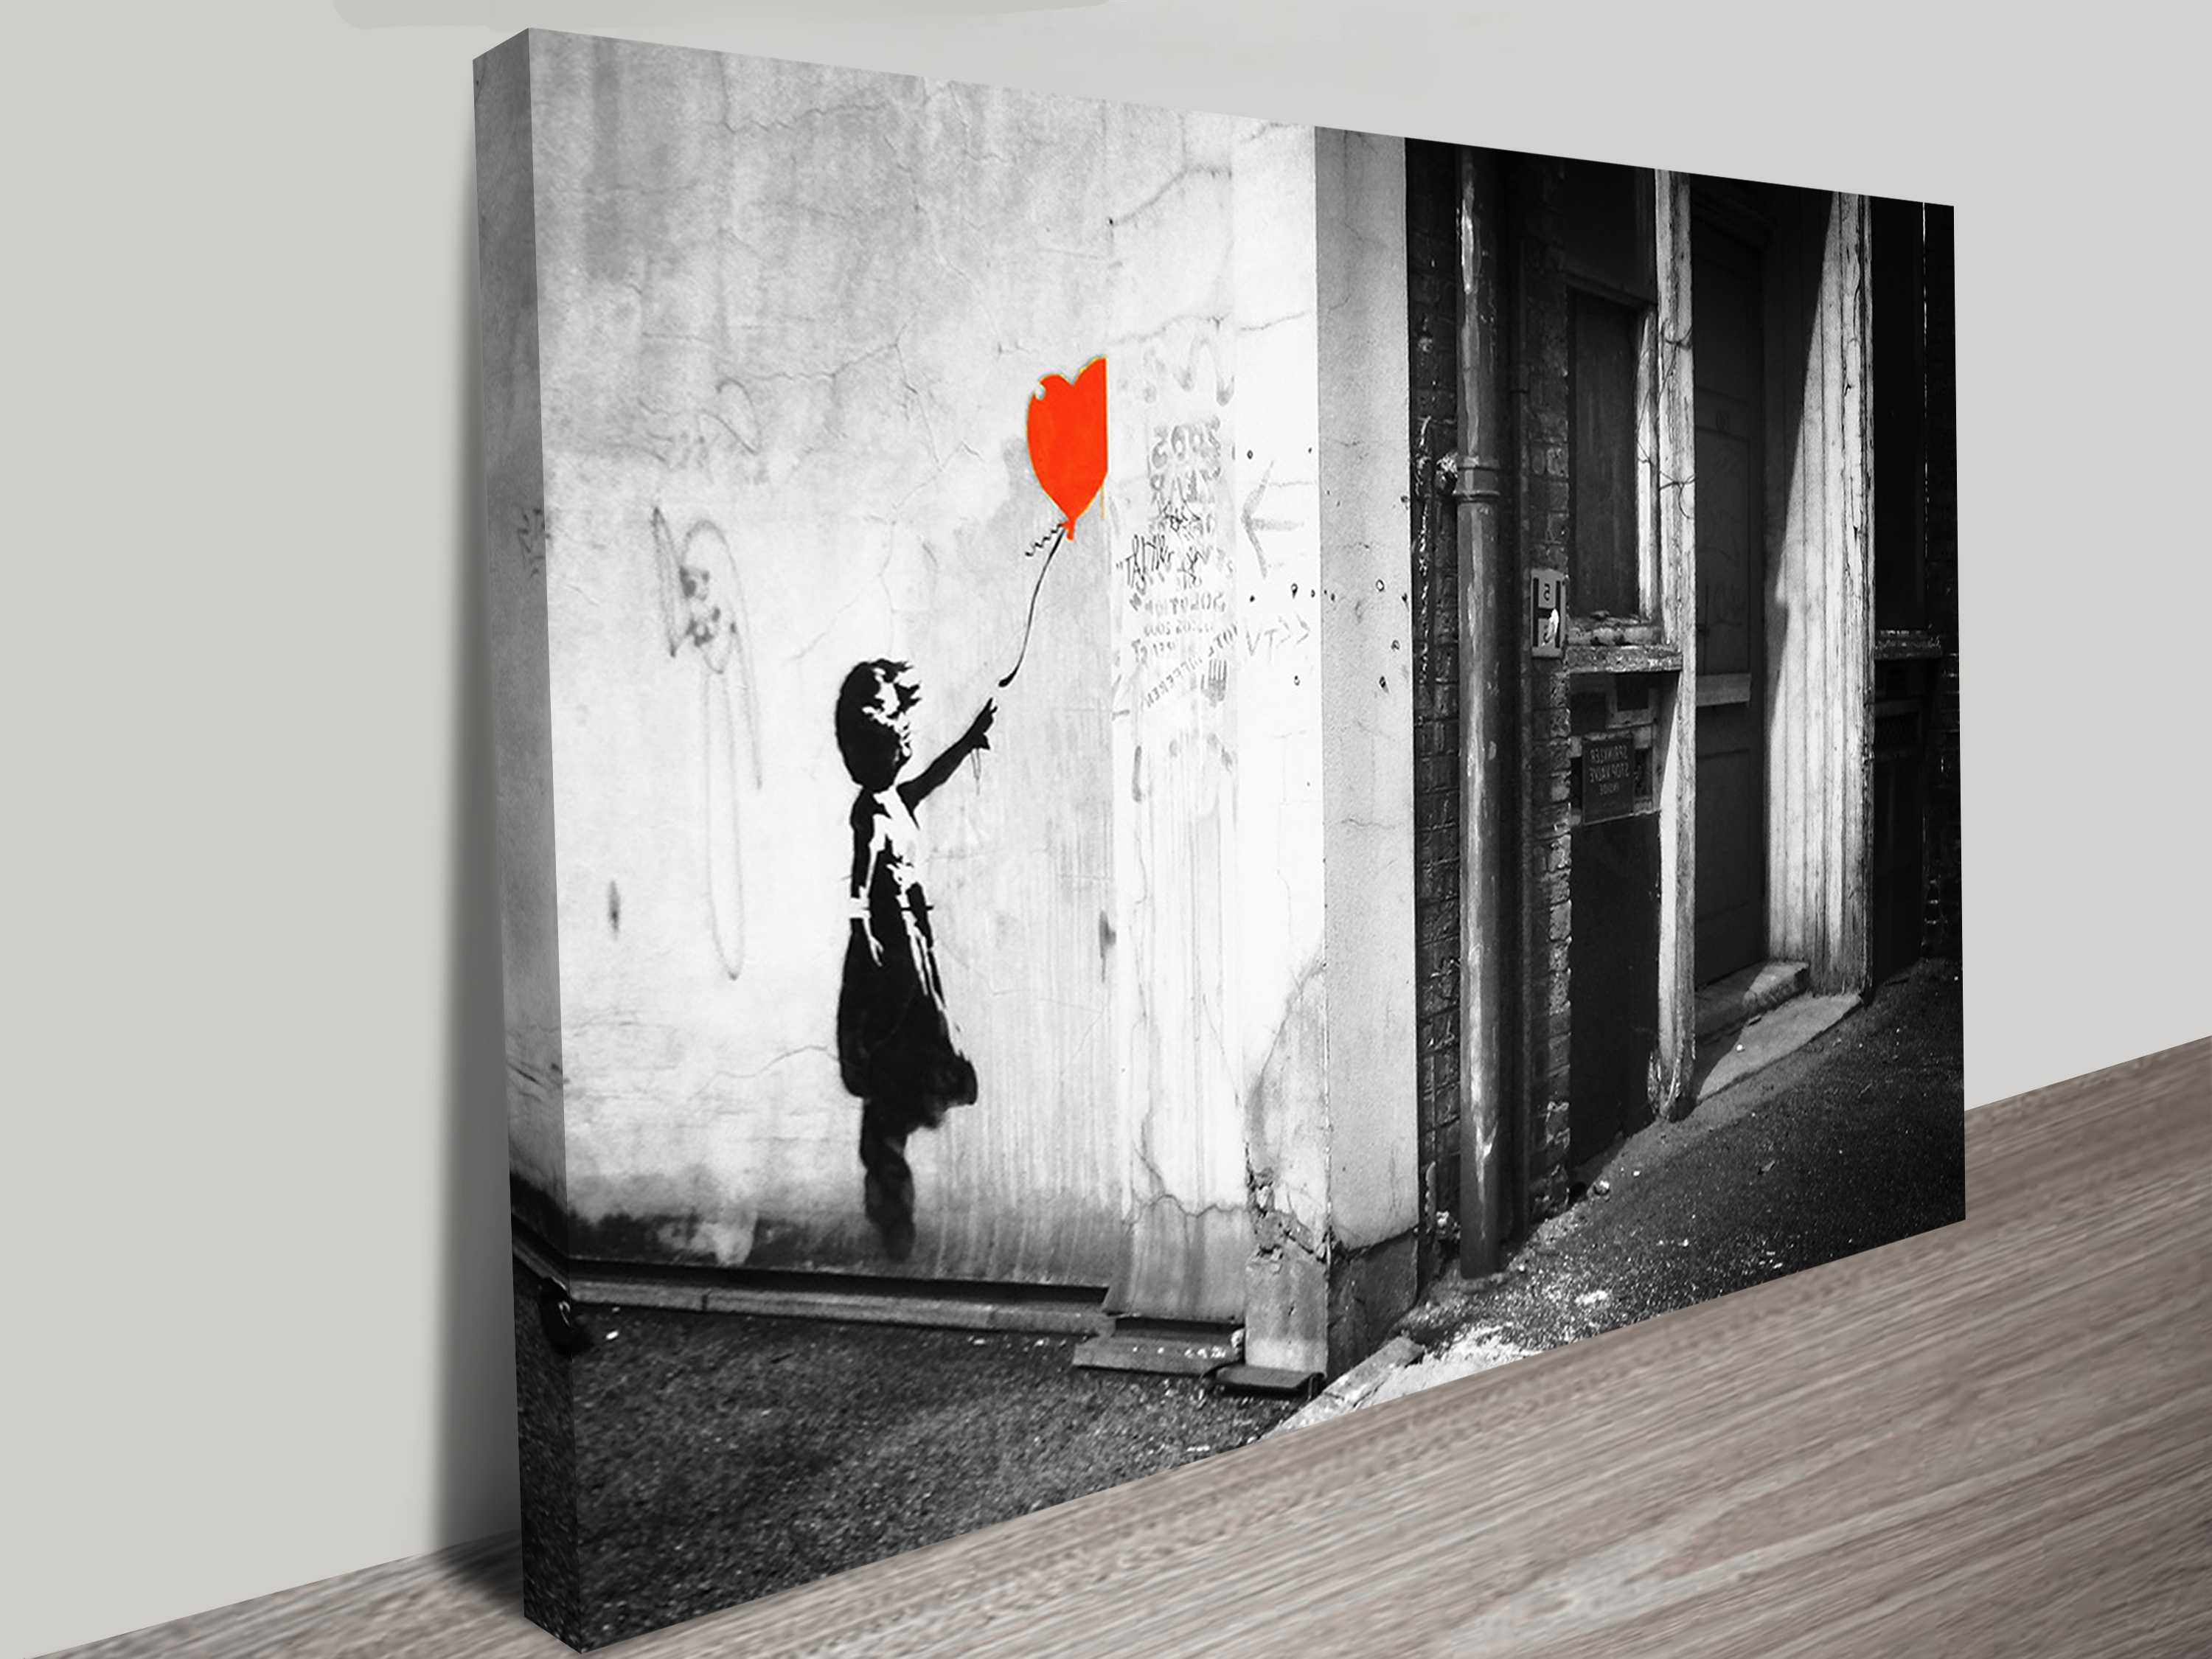 Banksy Balloon Girl Black & White Print On Canvas Regarding Well Known Banksy Wall Art Canvas (View 3 of 15)